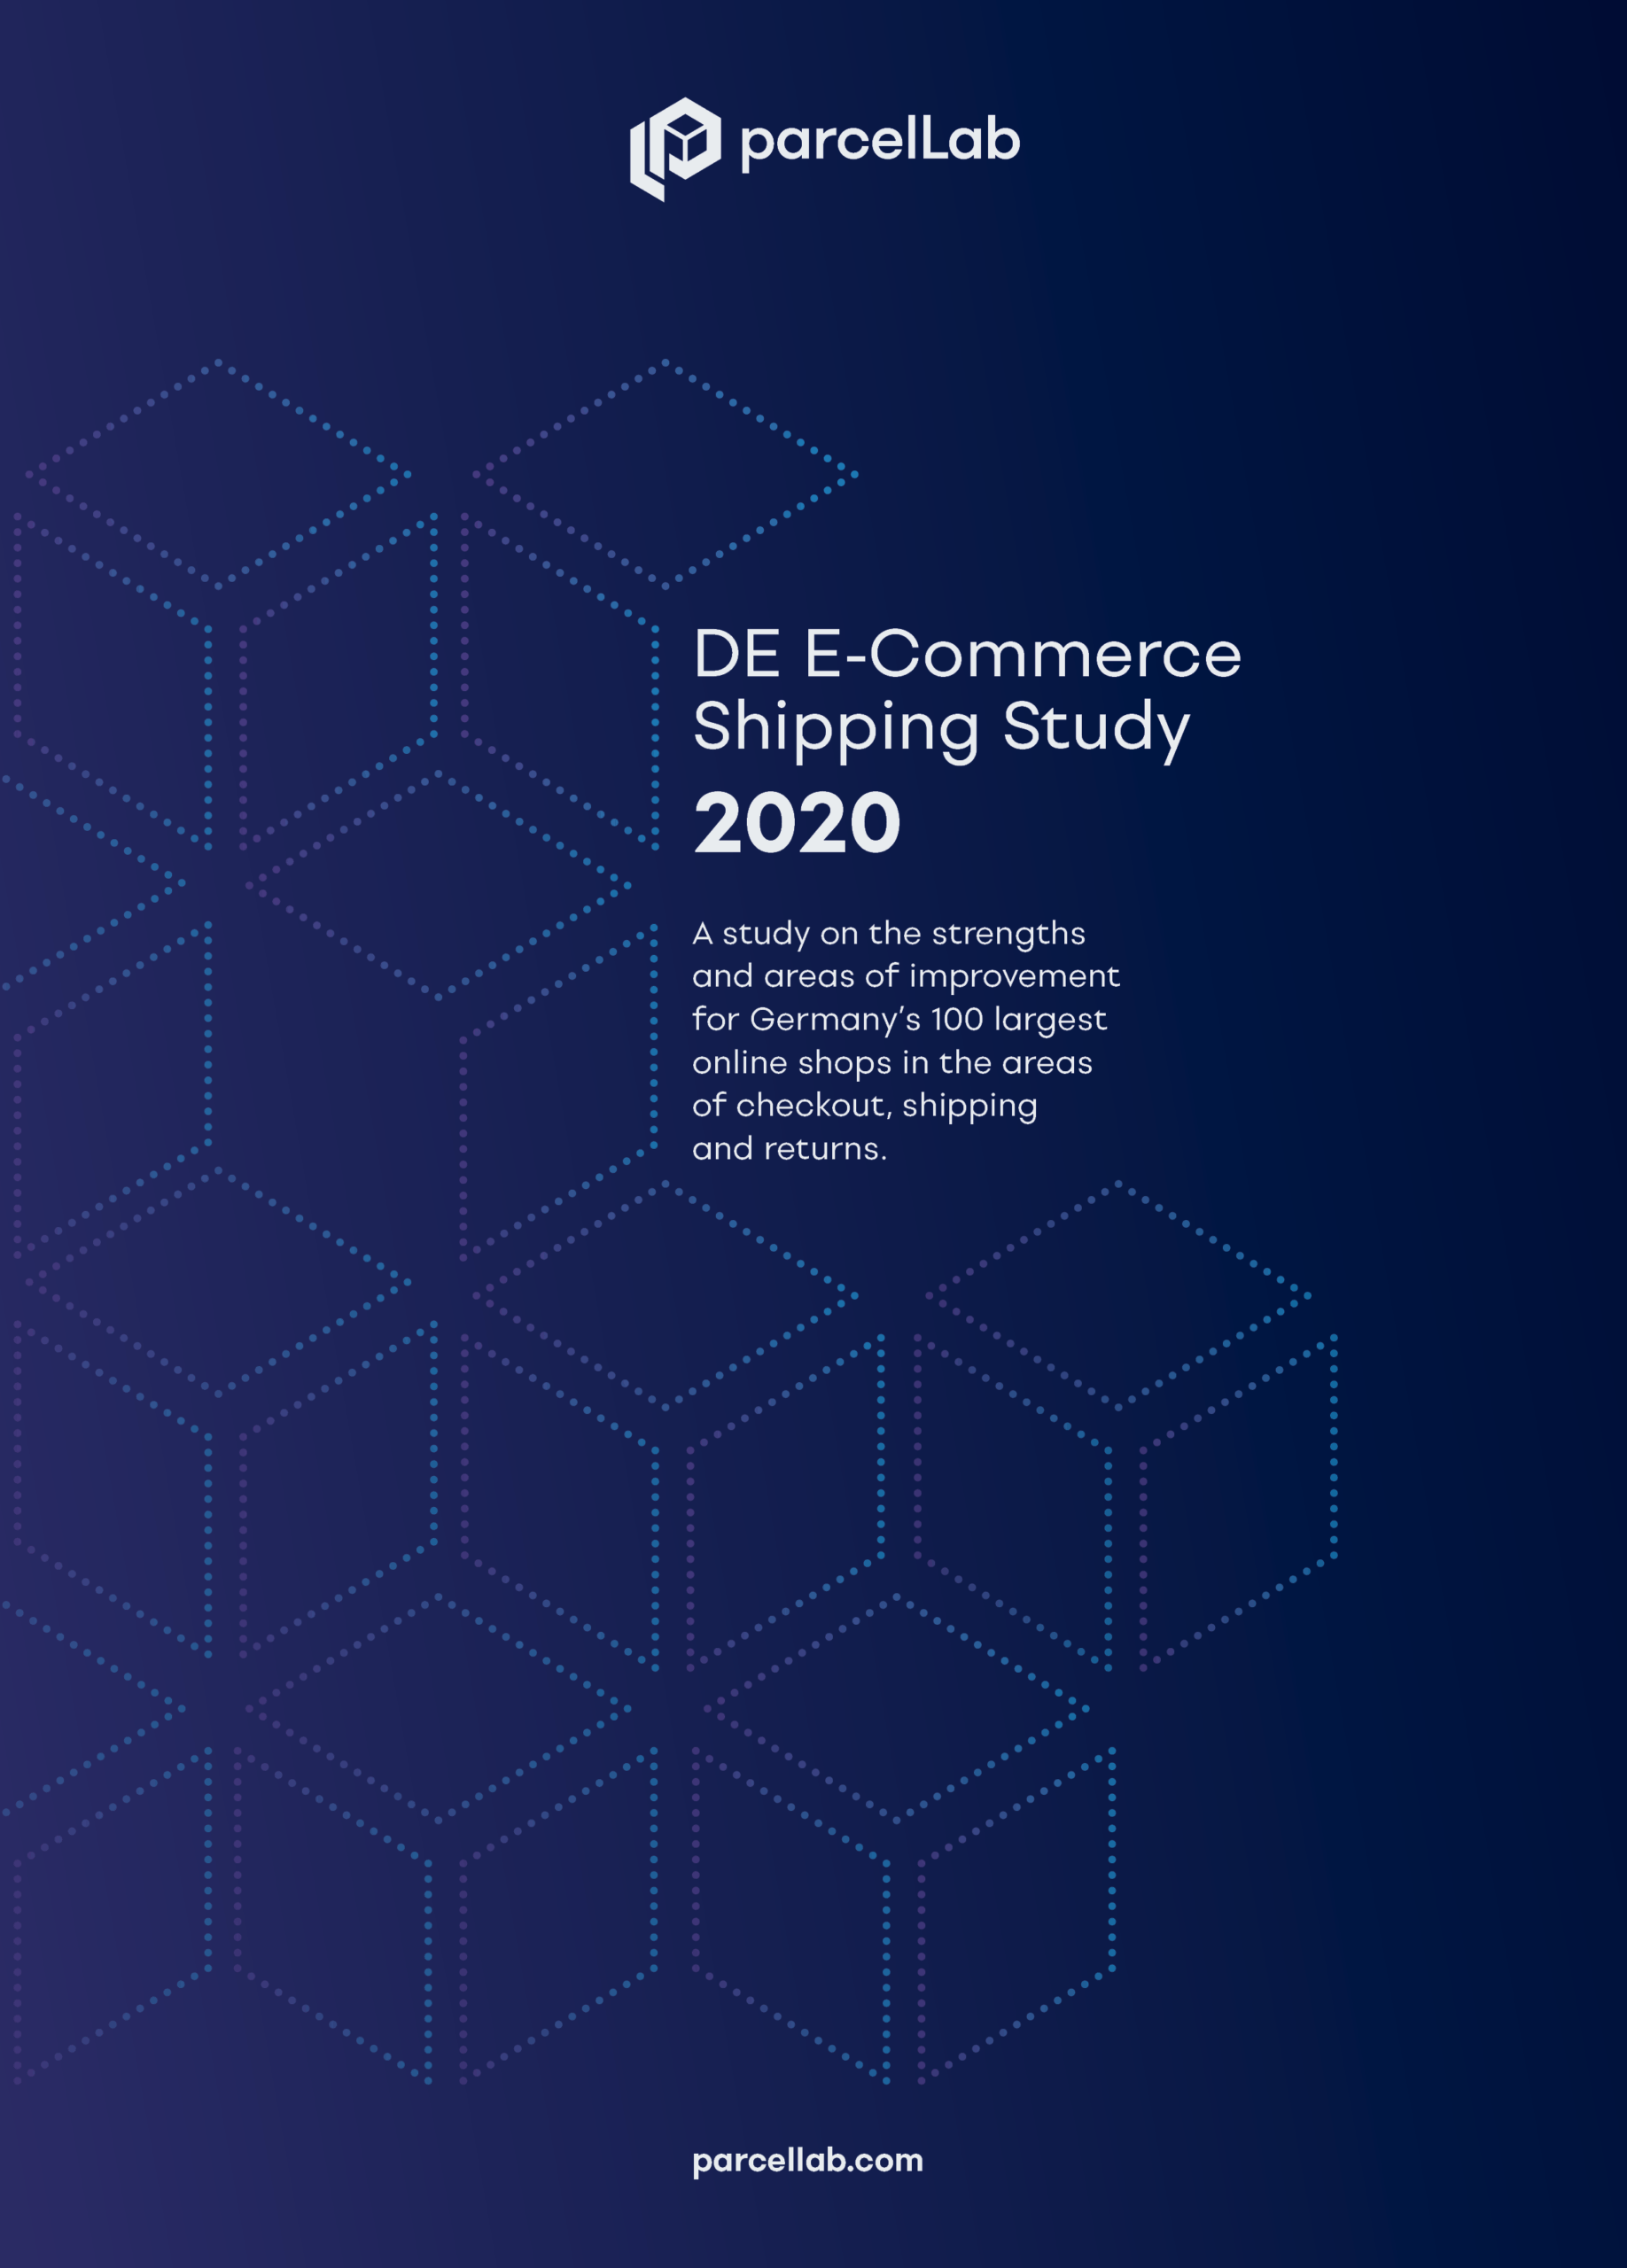 parcellab german ecommerce shipping study 2020 thumbnail